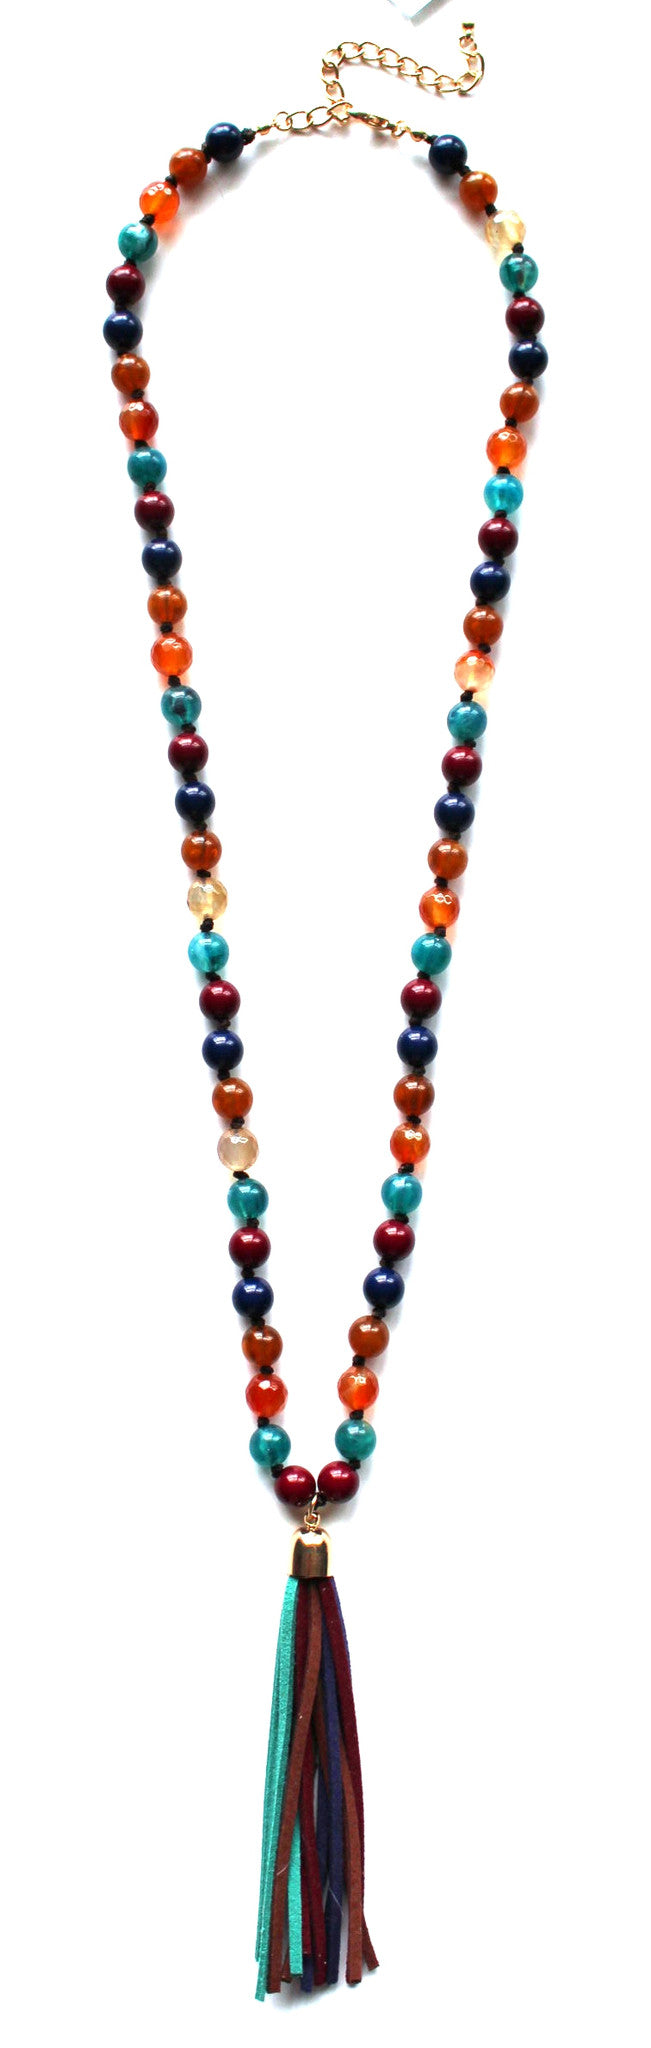 Colorful Beads & Tassels Necklace- Multi Navy